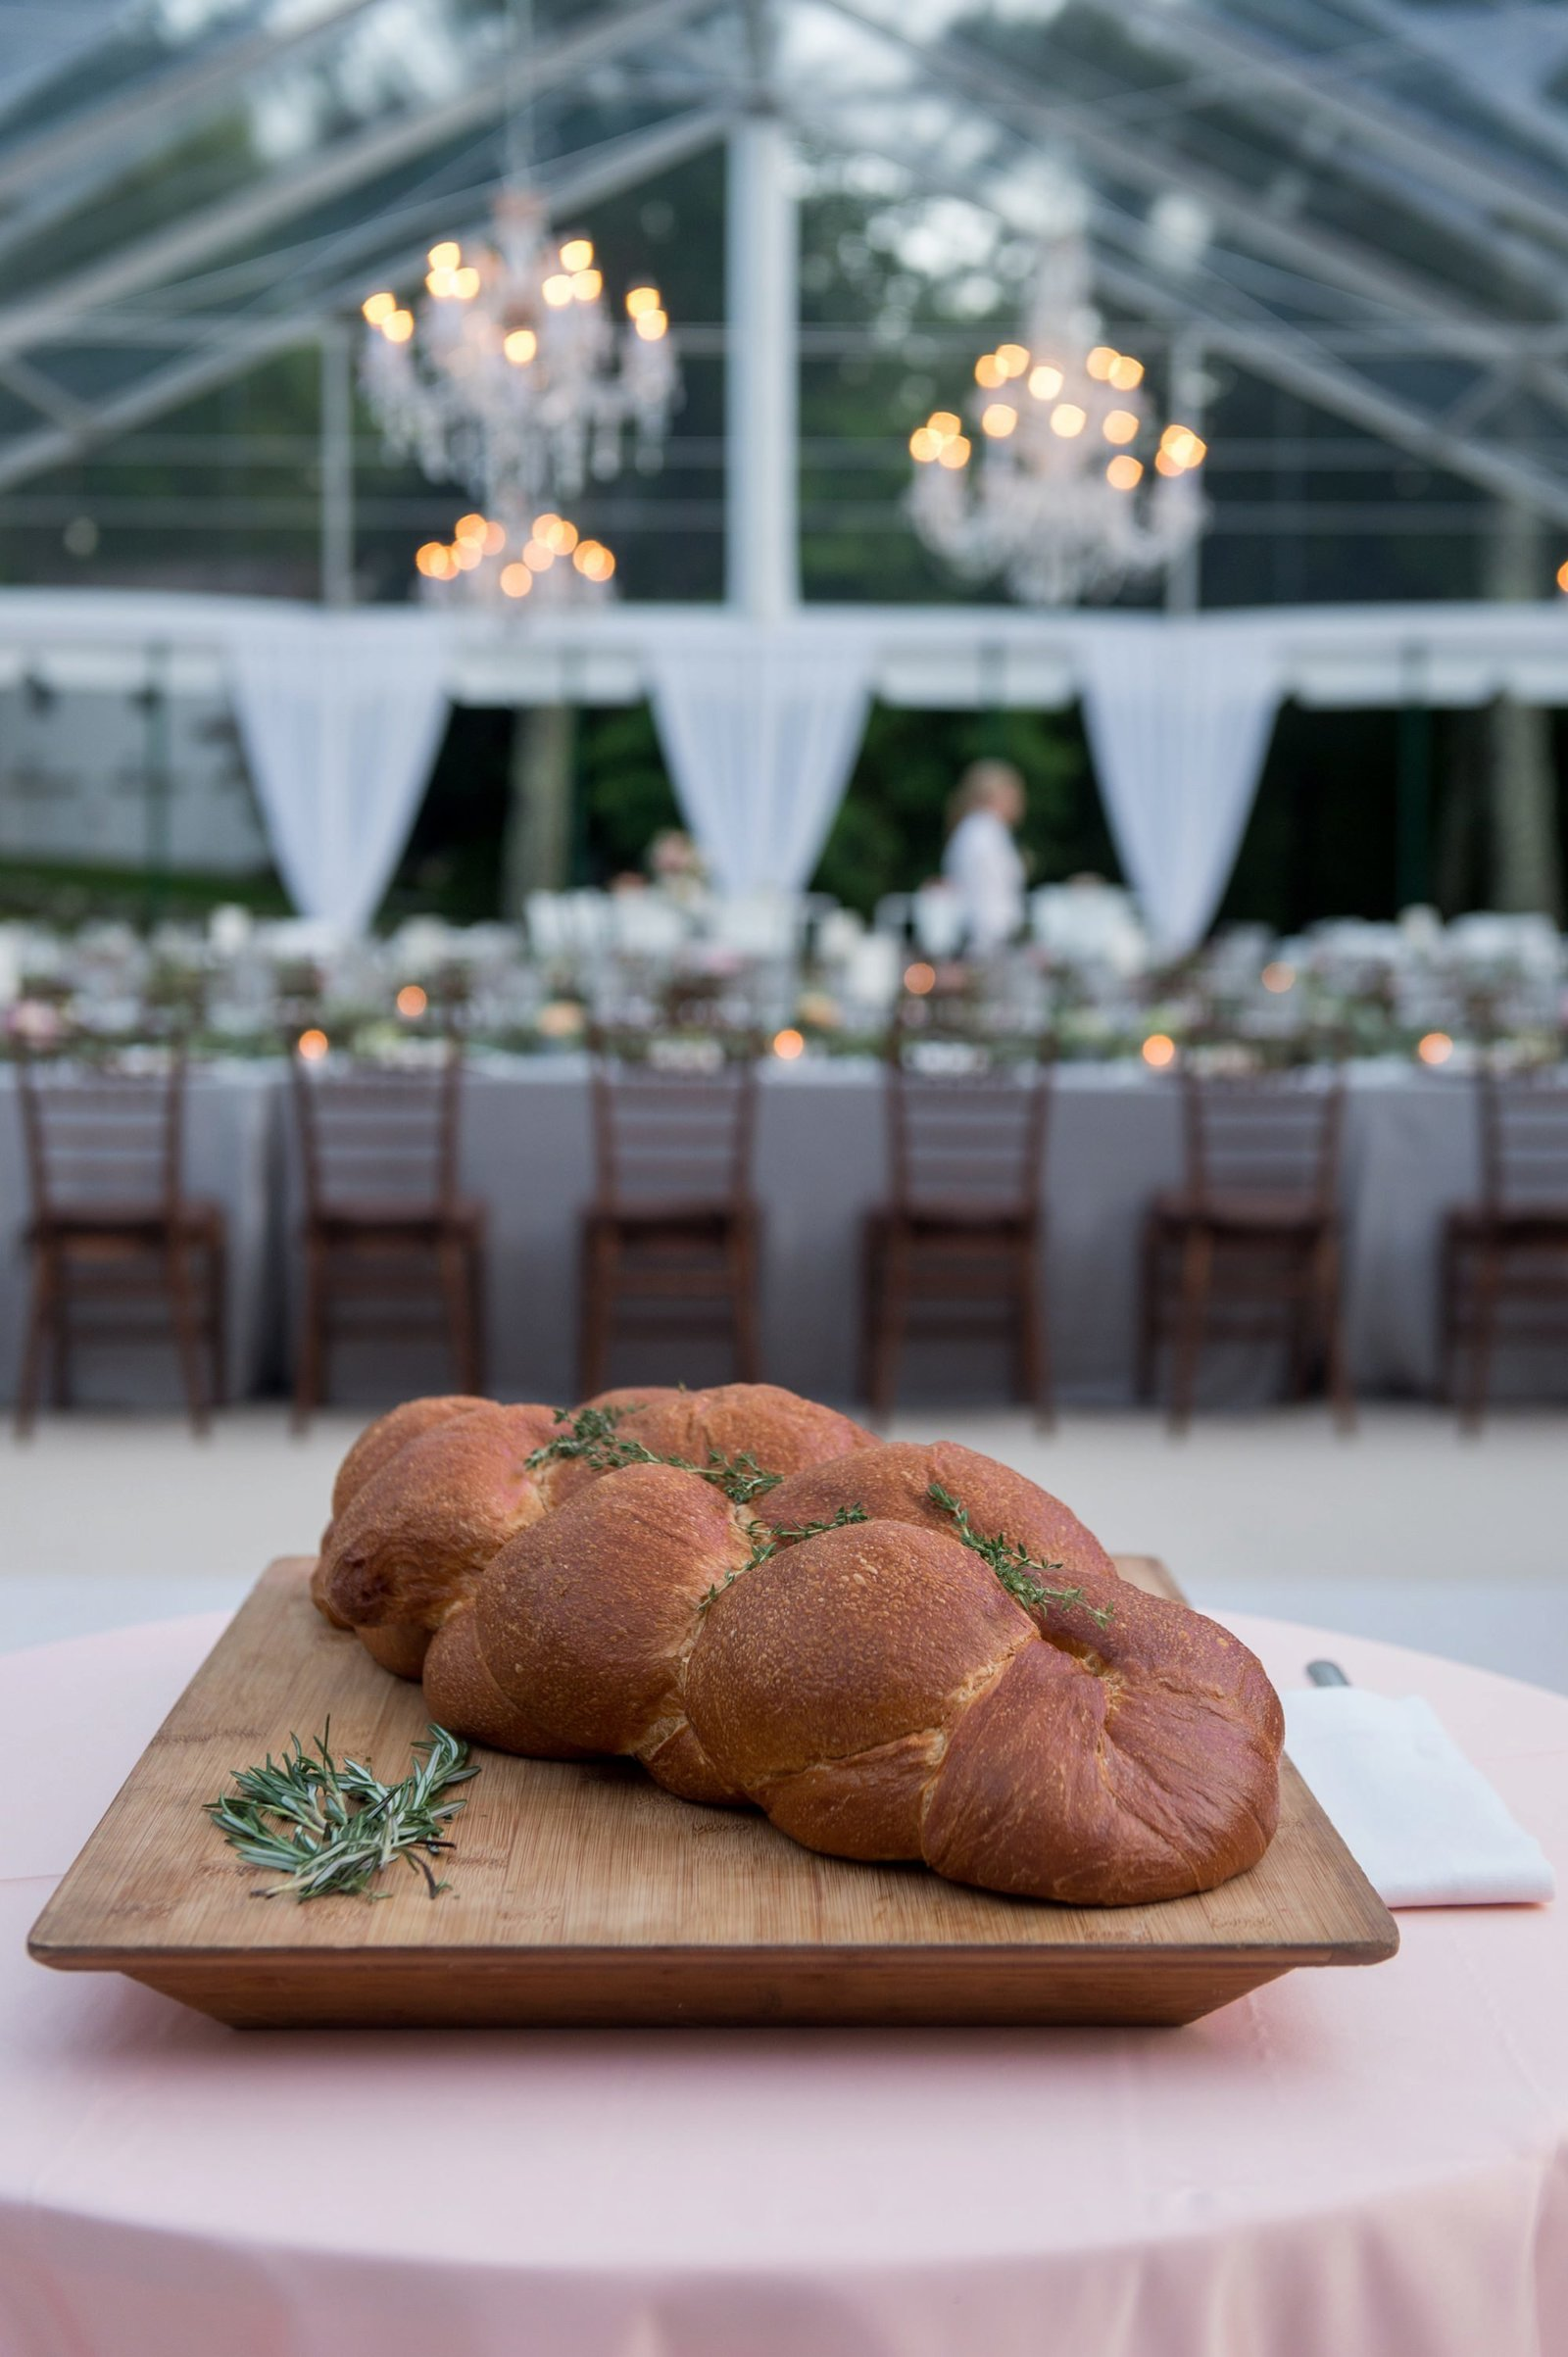 Clear top tented wedding challah bread in Washington, CT